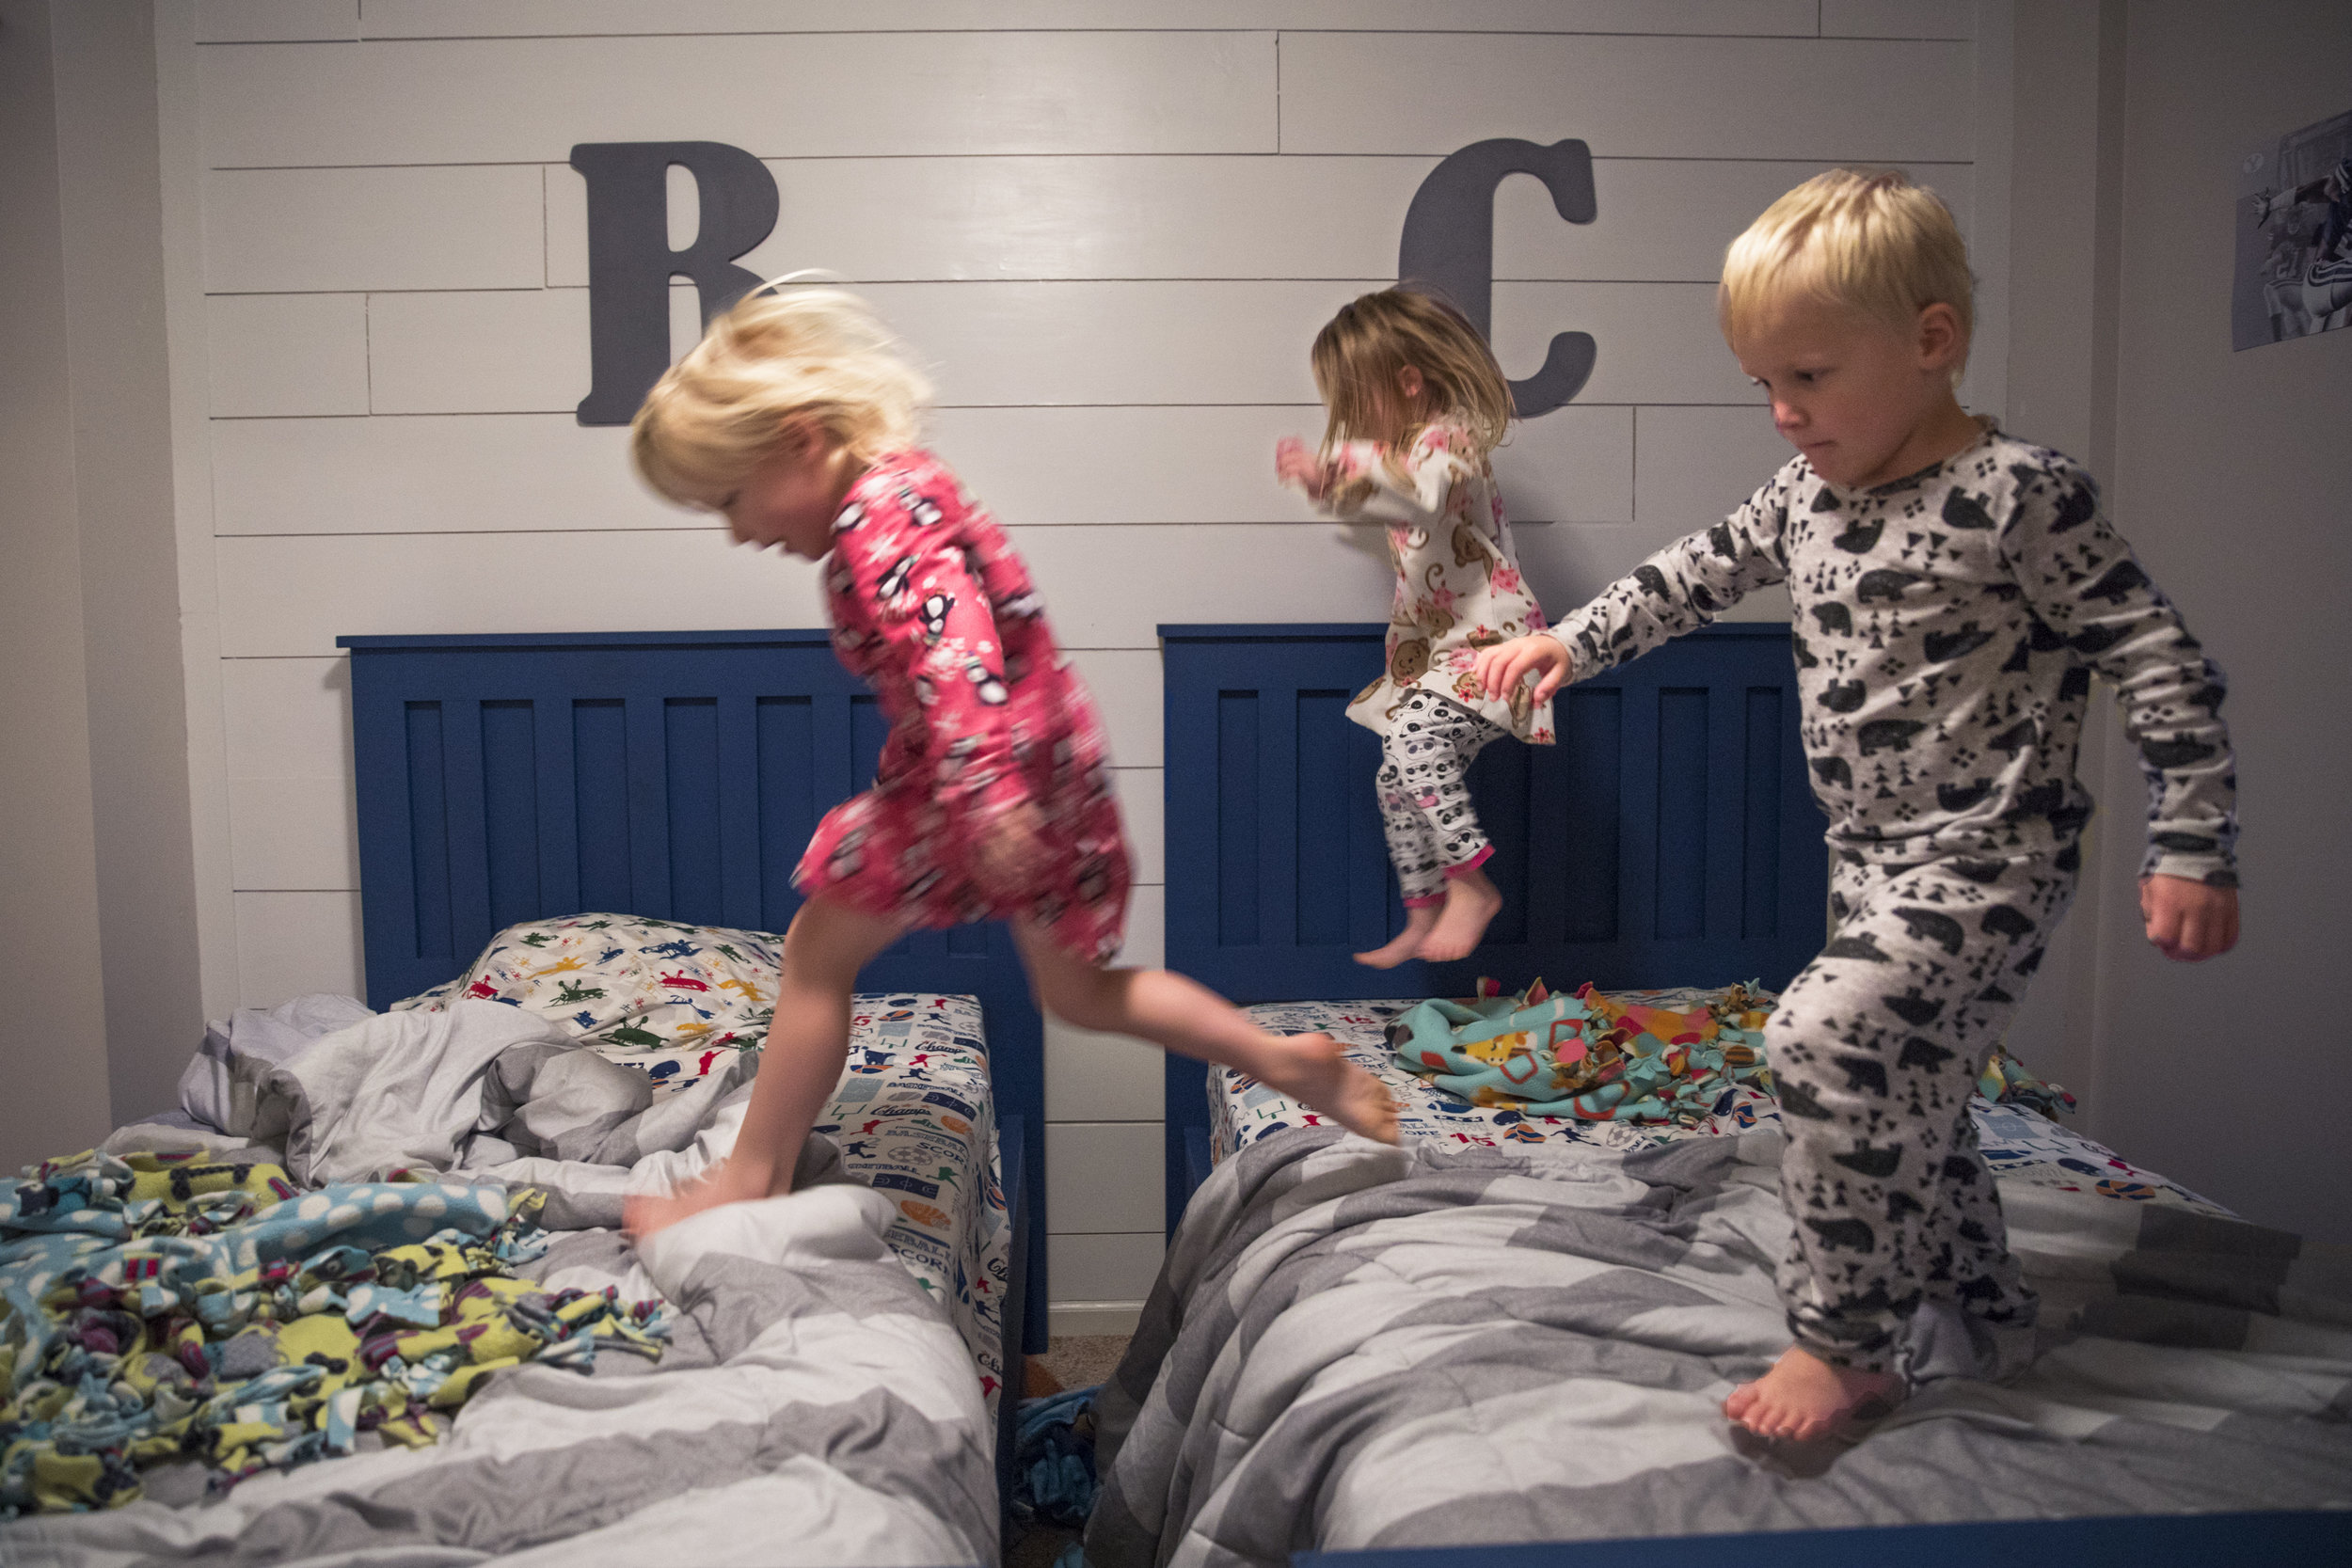 """Ashlyn, Kylie, and Cooper jump on the boys' beds as their mother Courtney sings, """"Five little monkeys jumping on the bed"""" on Oct. 23, 2016 in Lima, New Yo"""